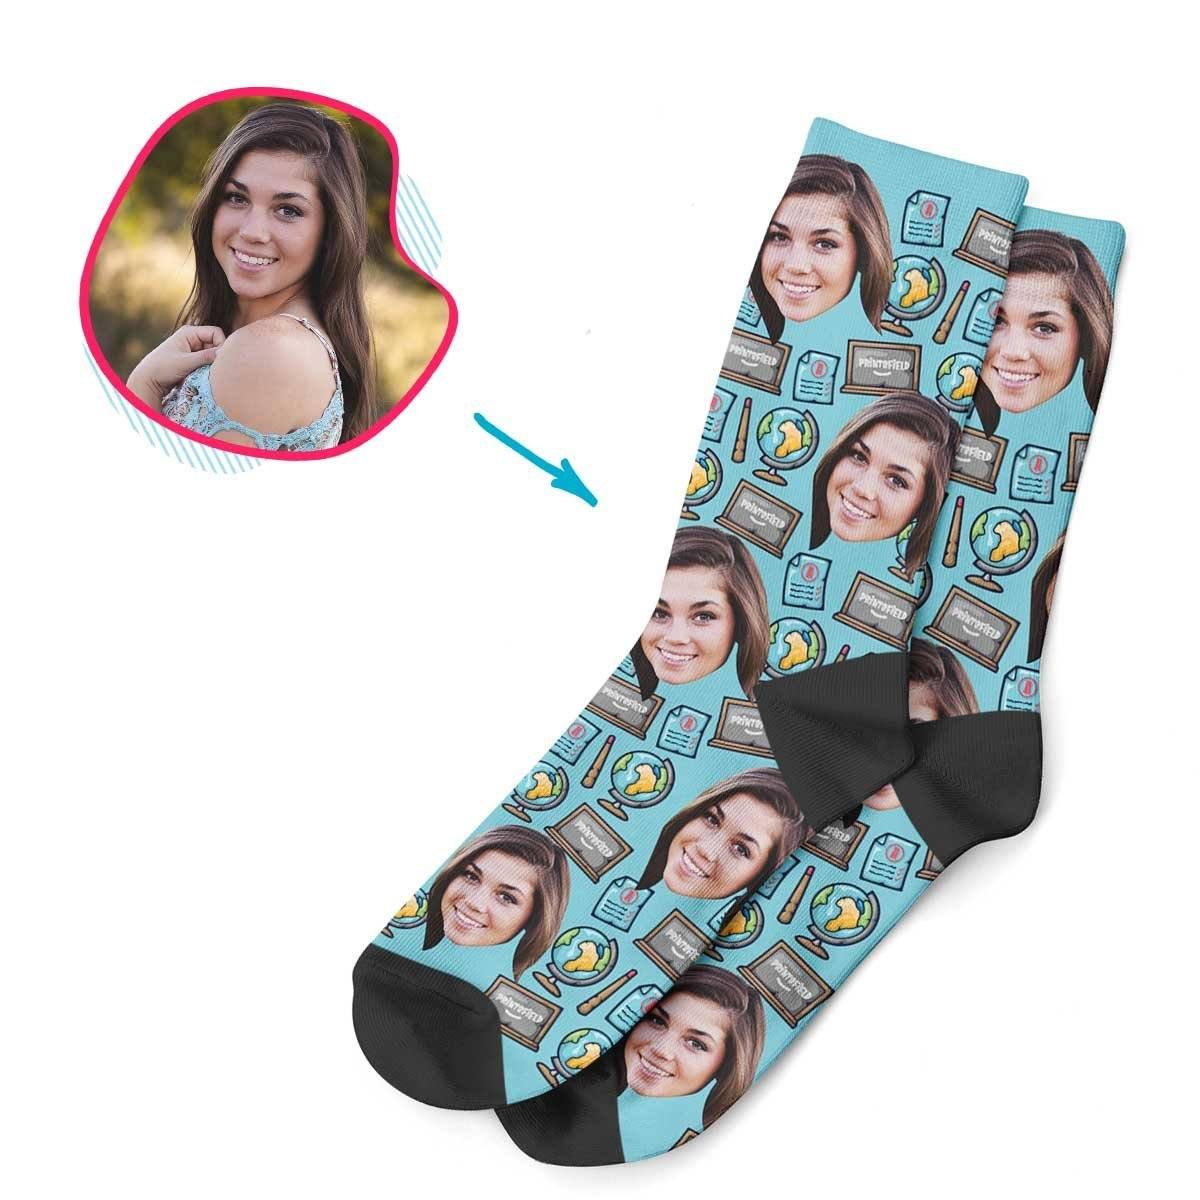 Blue Teacher personalized socks with photo of face printed on them